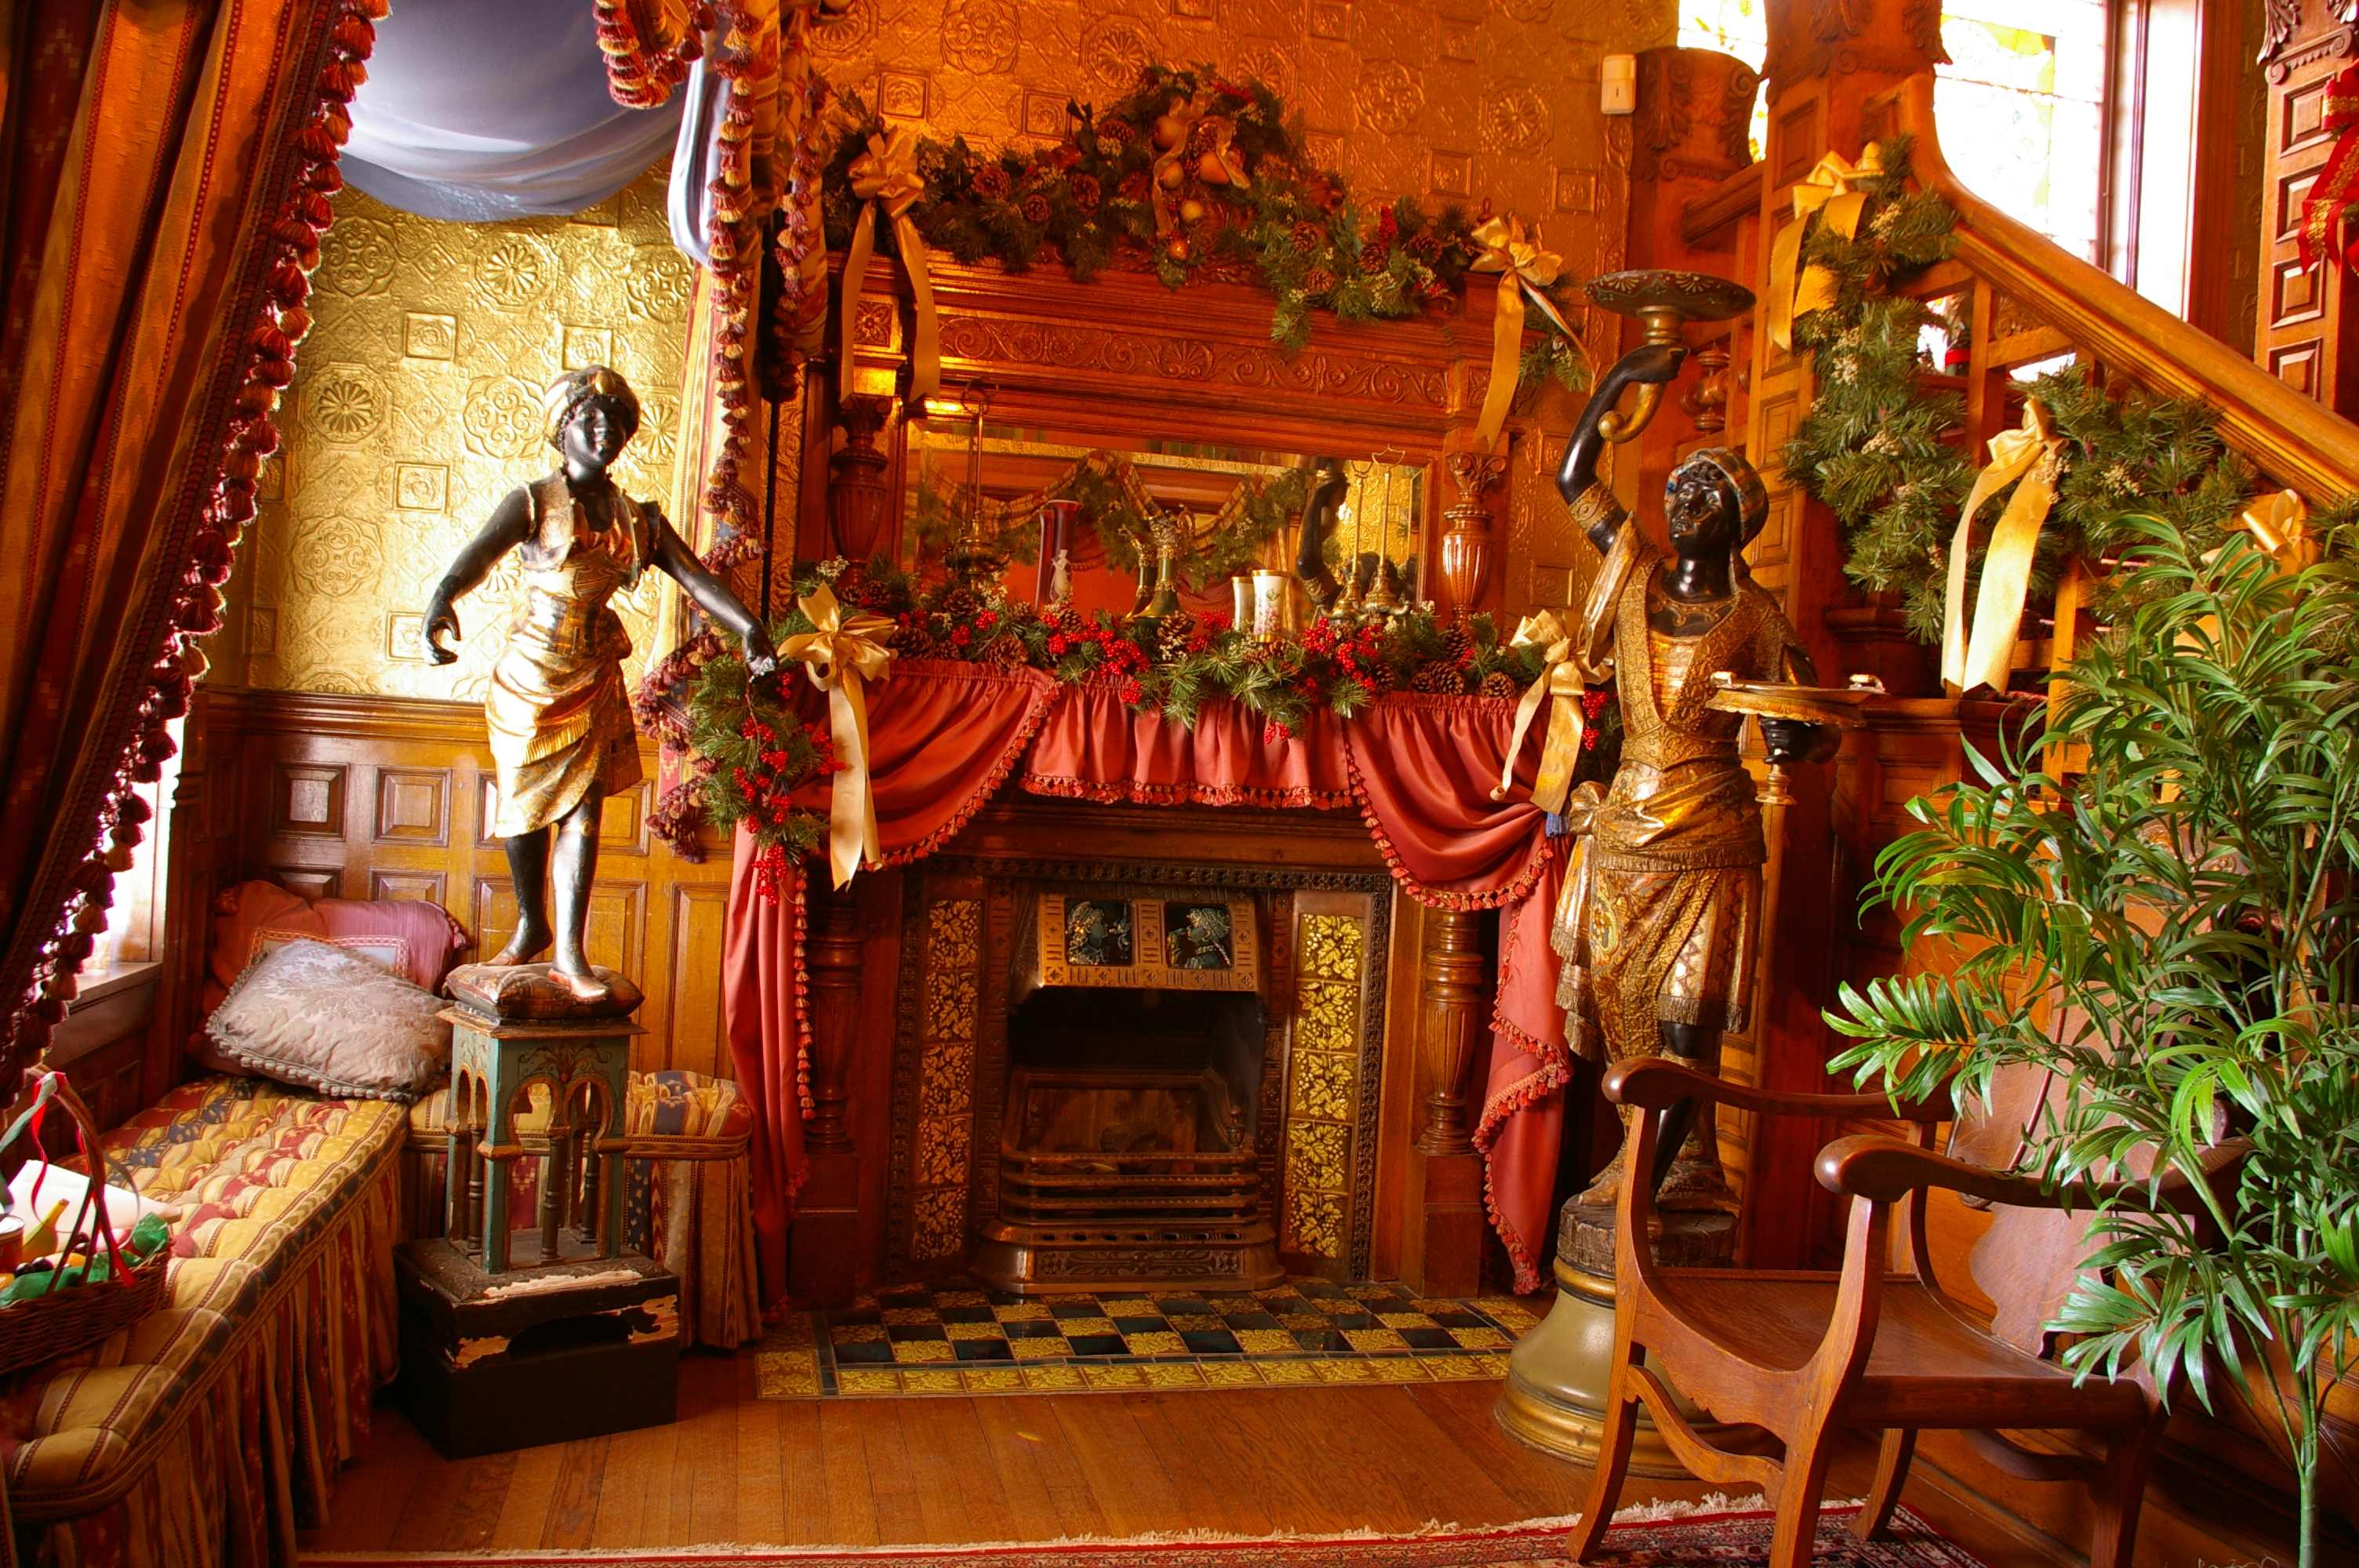 Decorating Historic Homes Entryway Decorated For Christmas Molly Brown House Museum